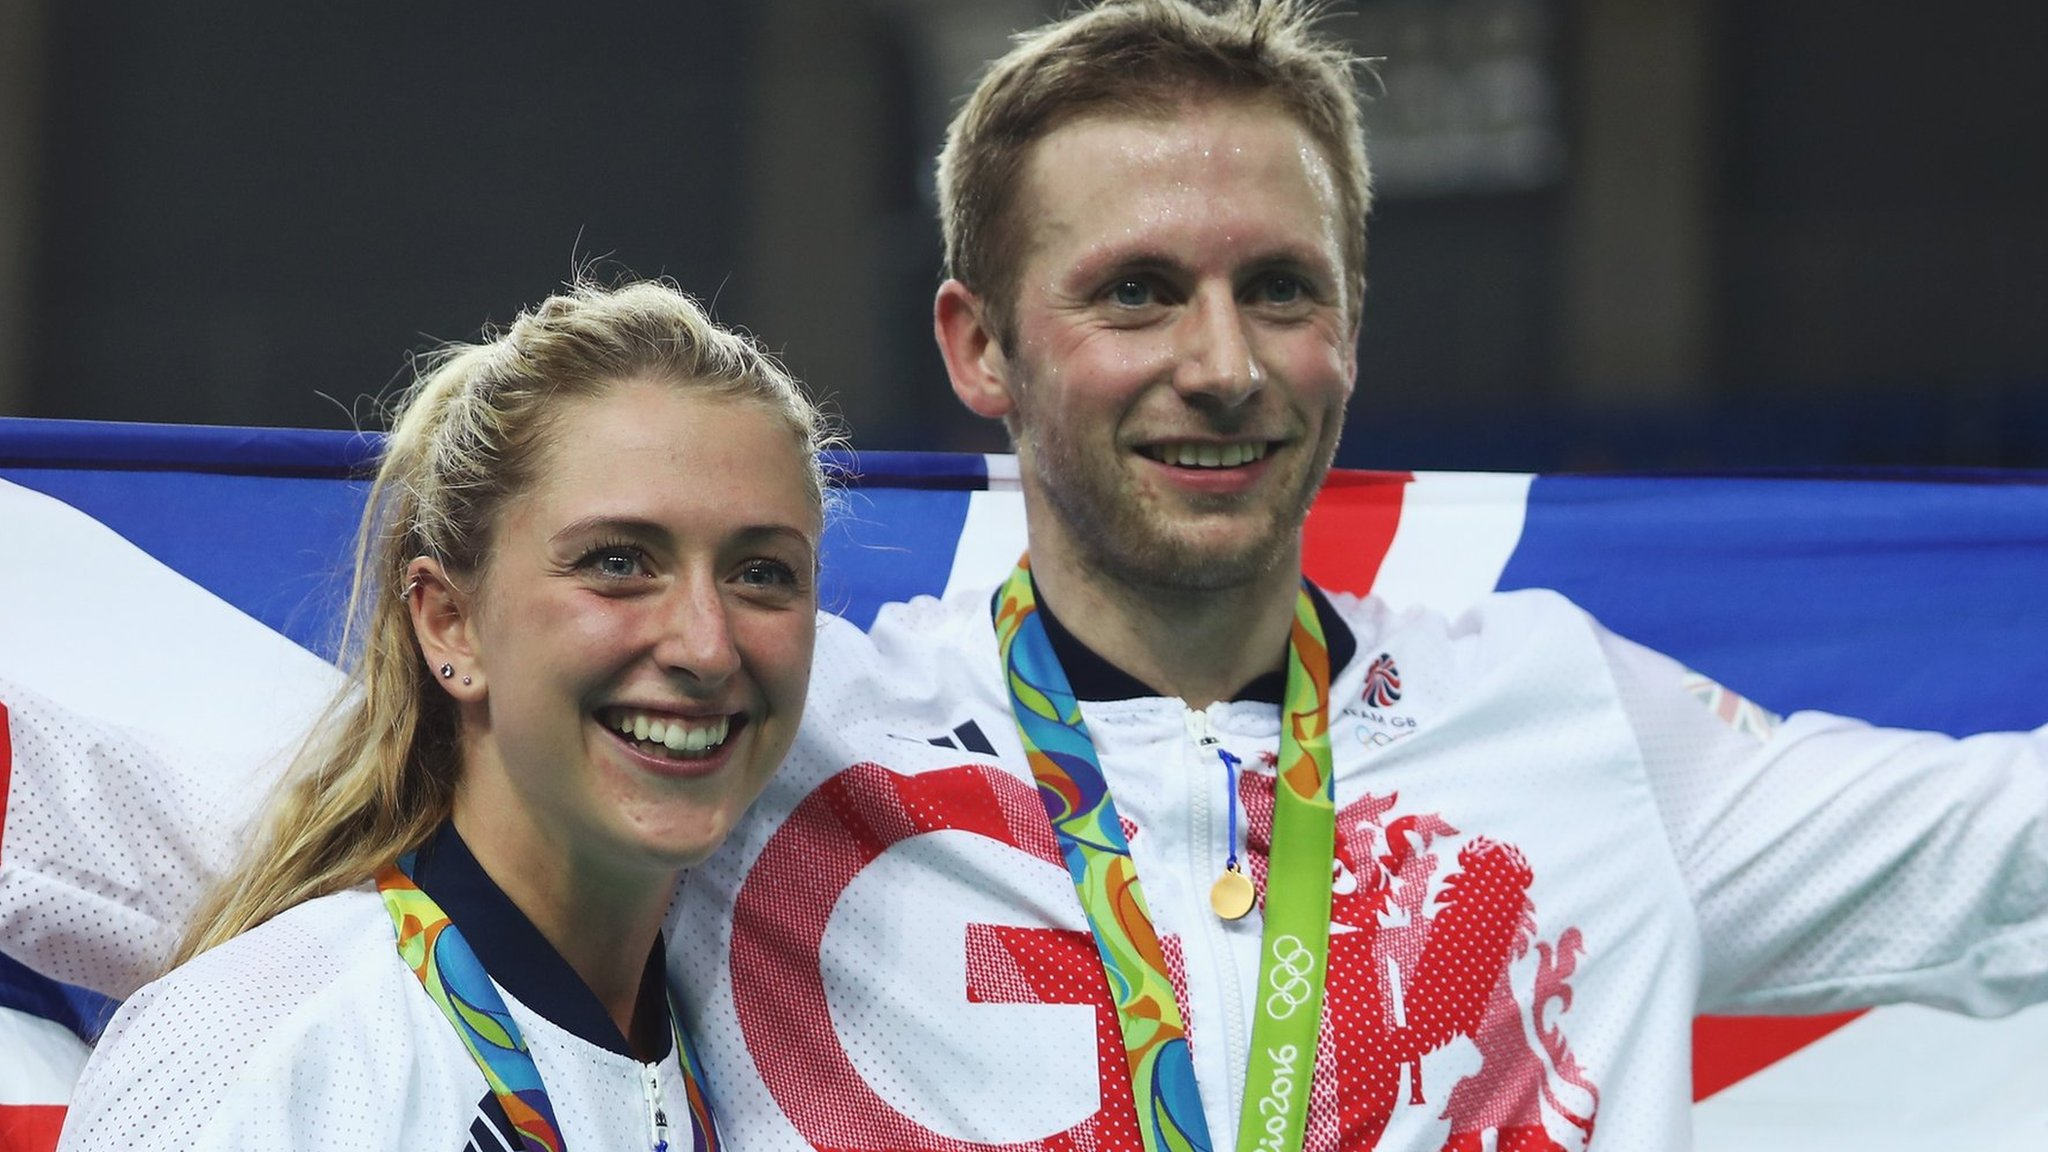 Track World Championships live on the BBC - how to follow and who to watch